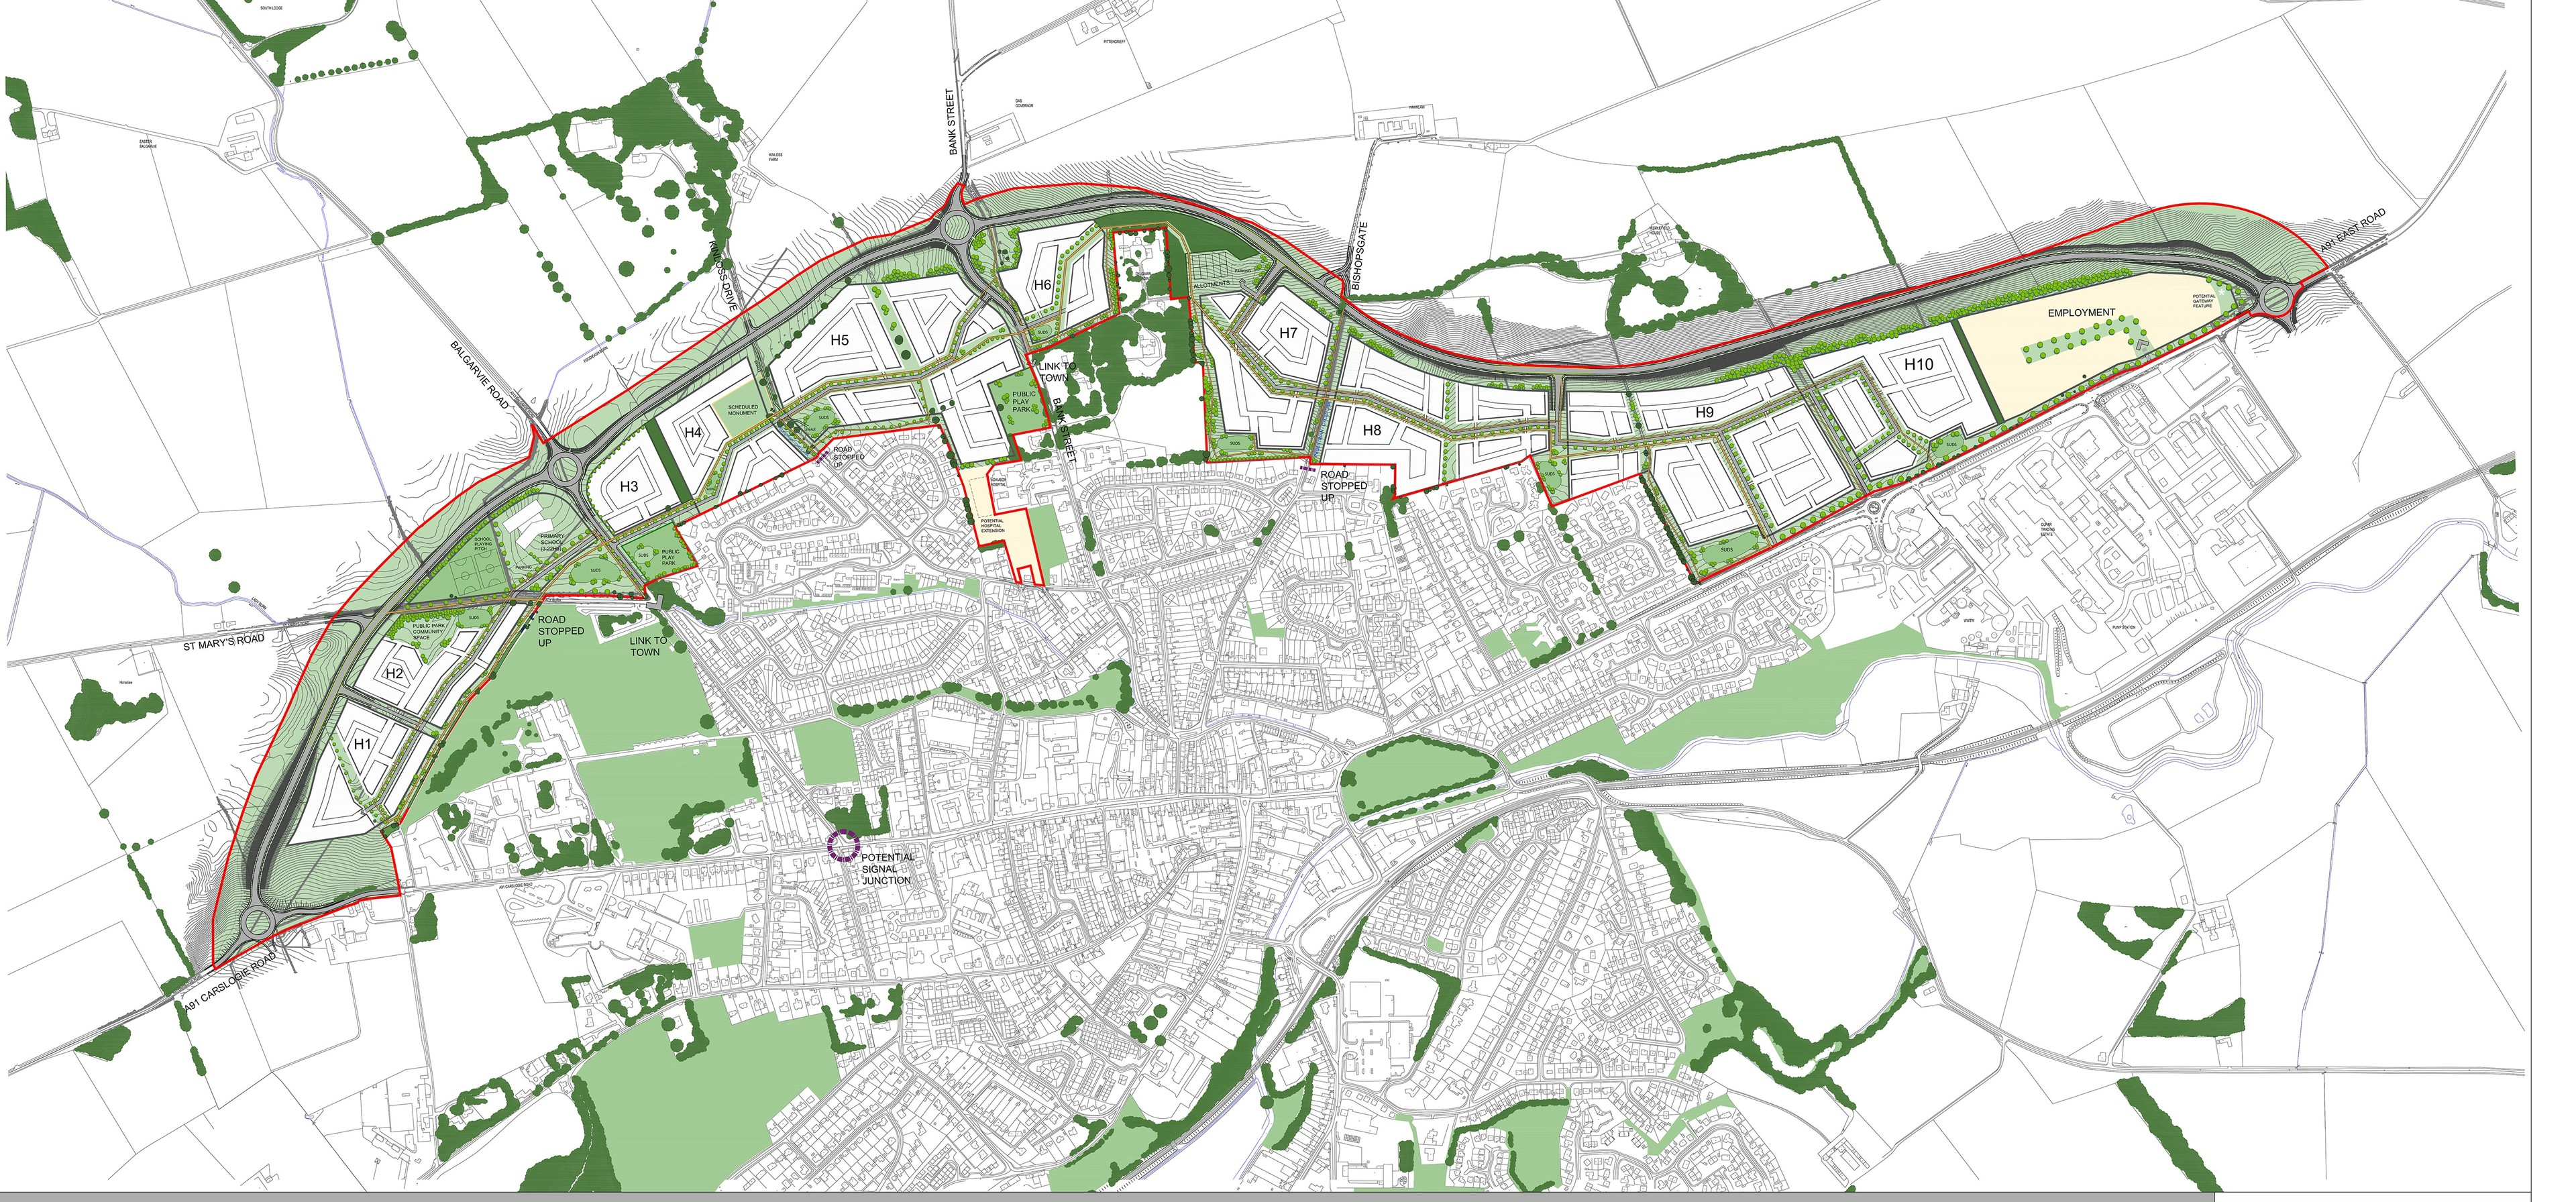 Plans for Cupar North.